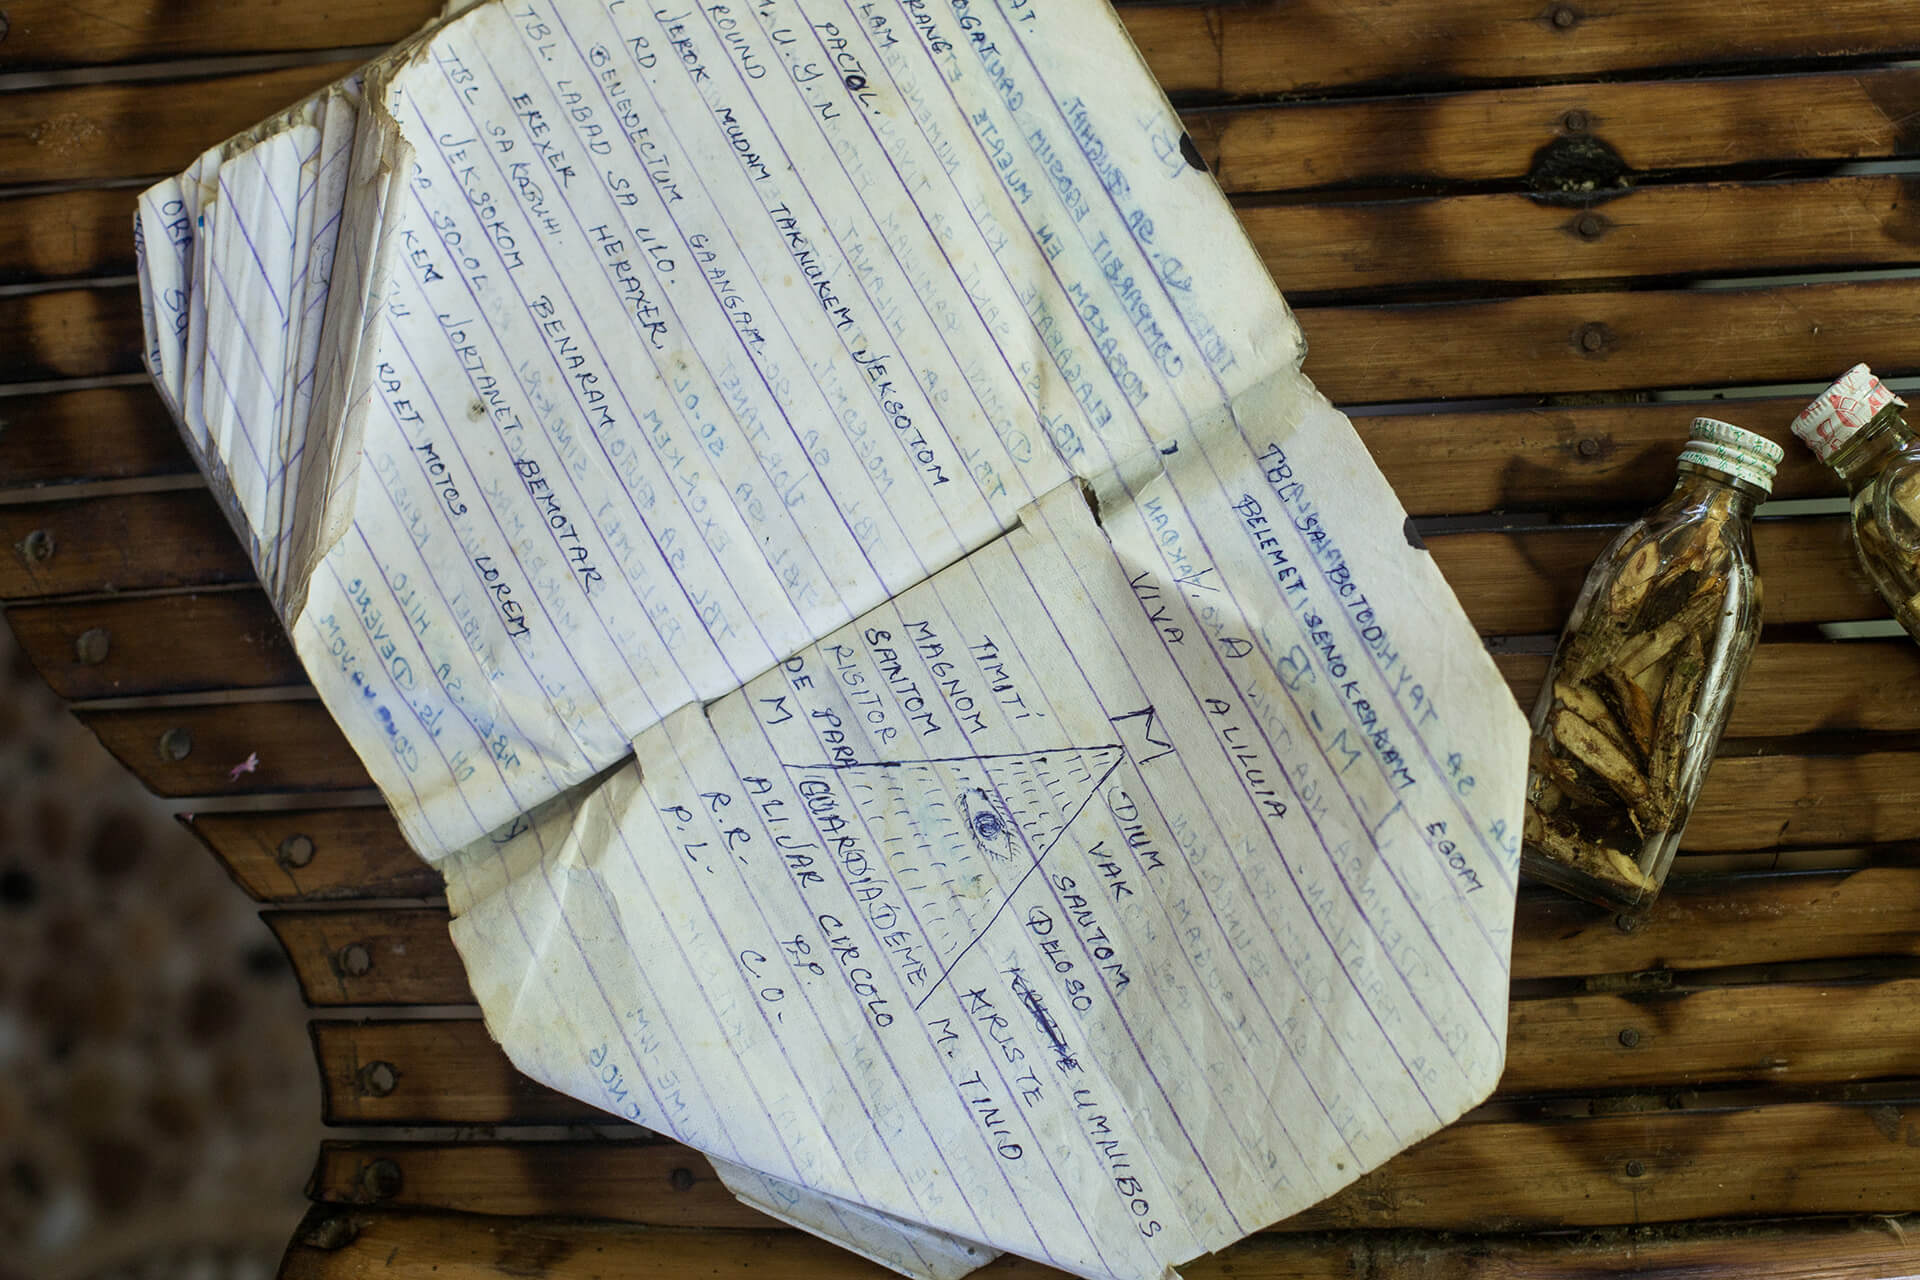 Quirino's notebook of orasyones for every condition or situation.